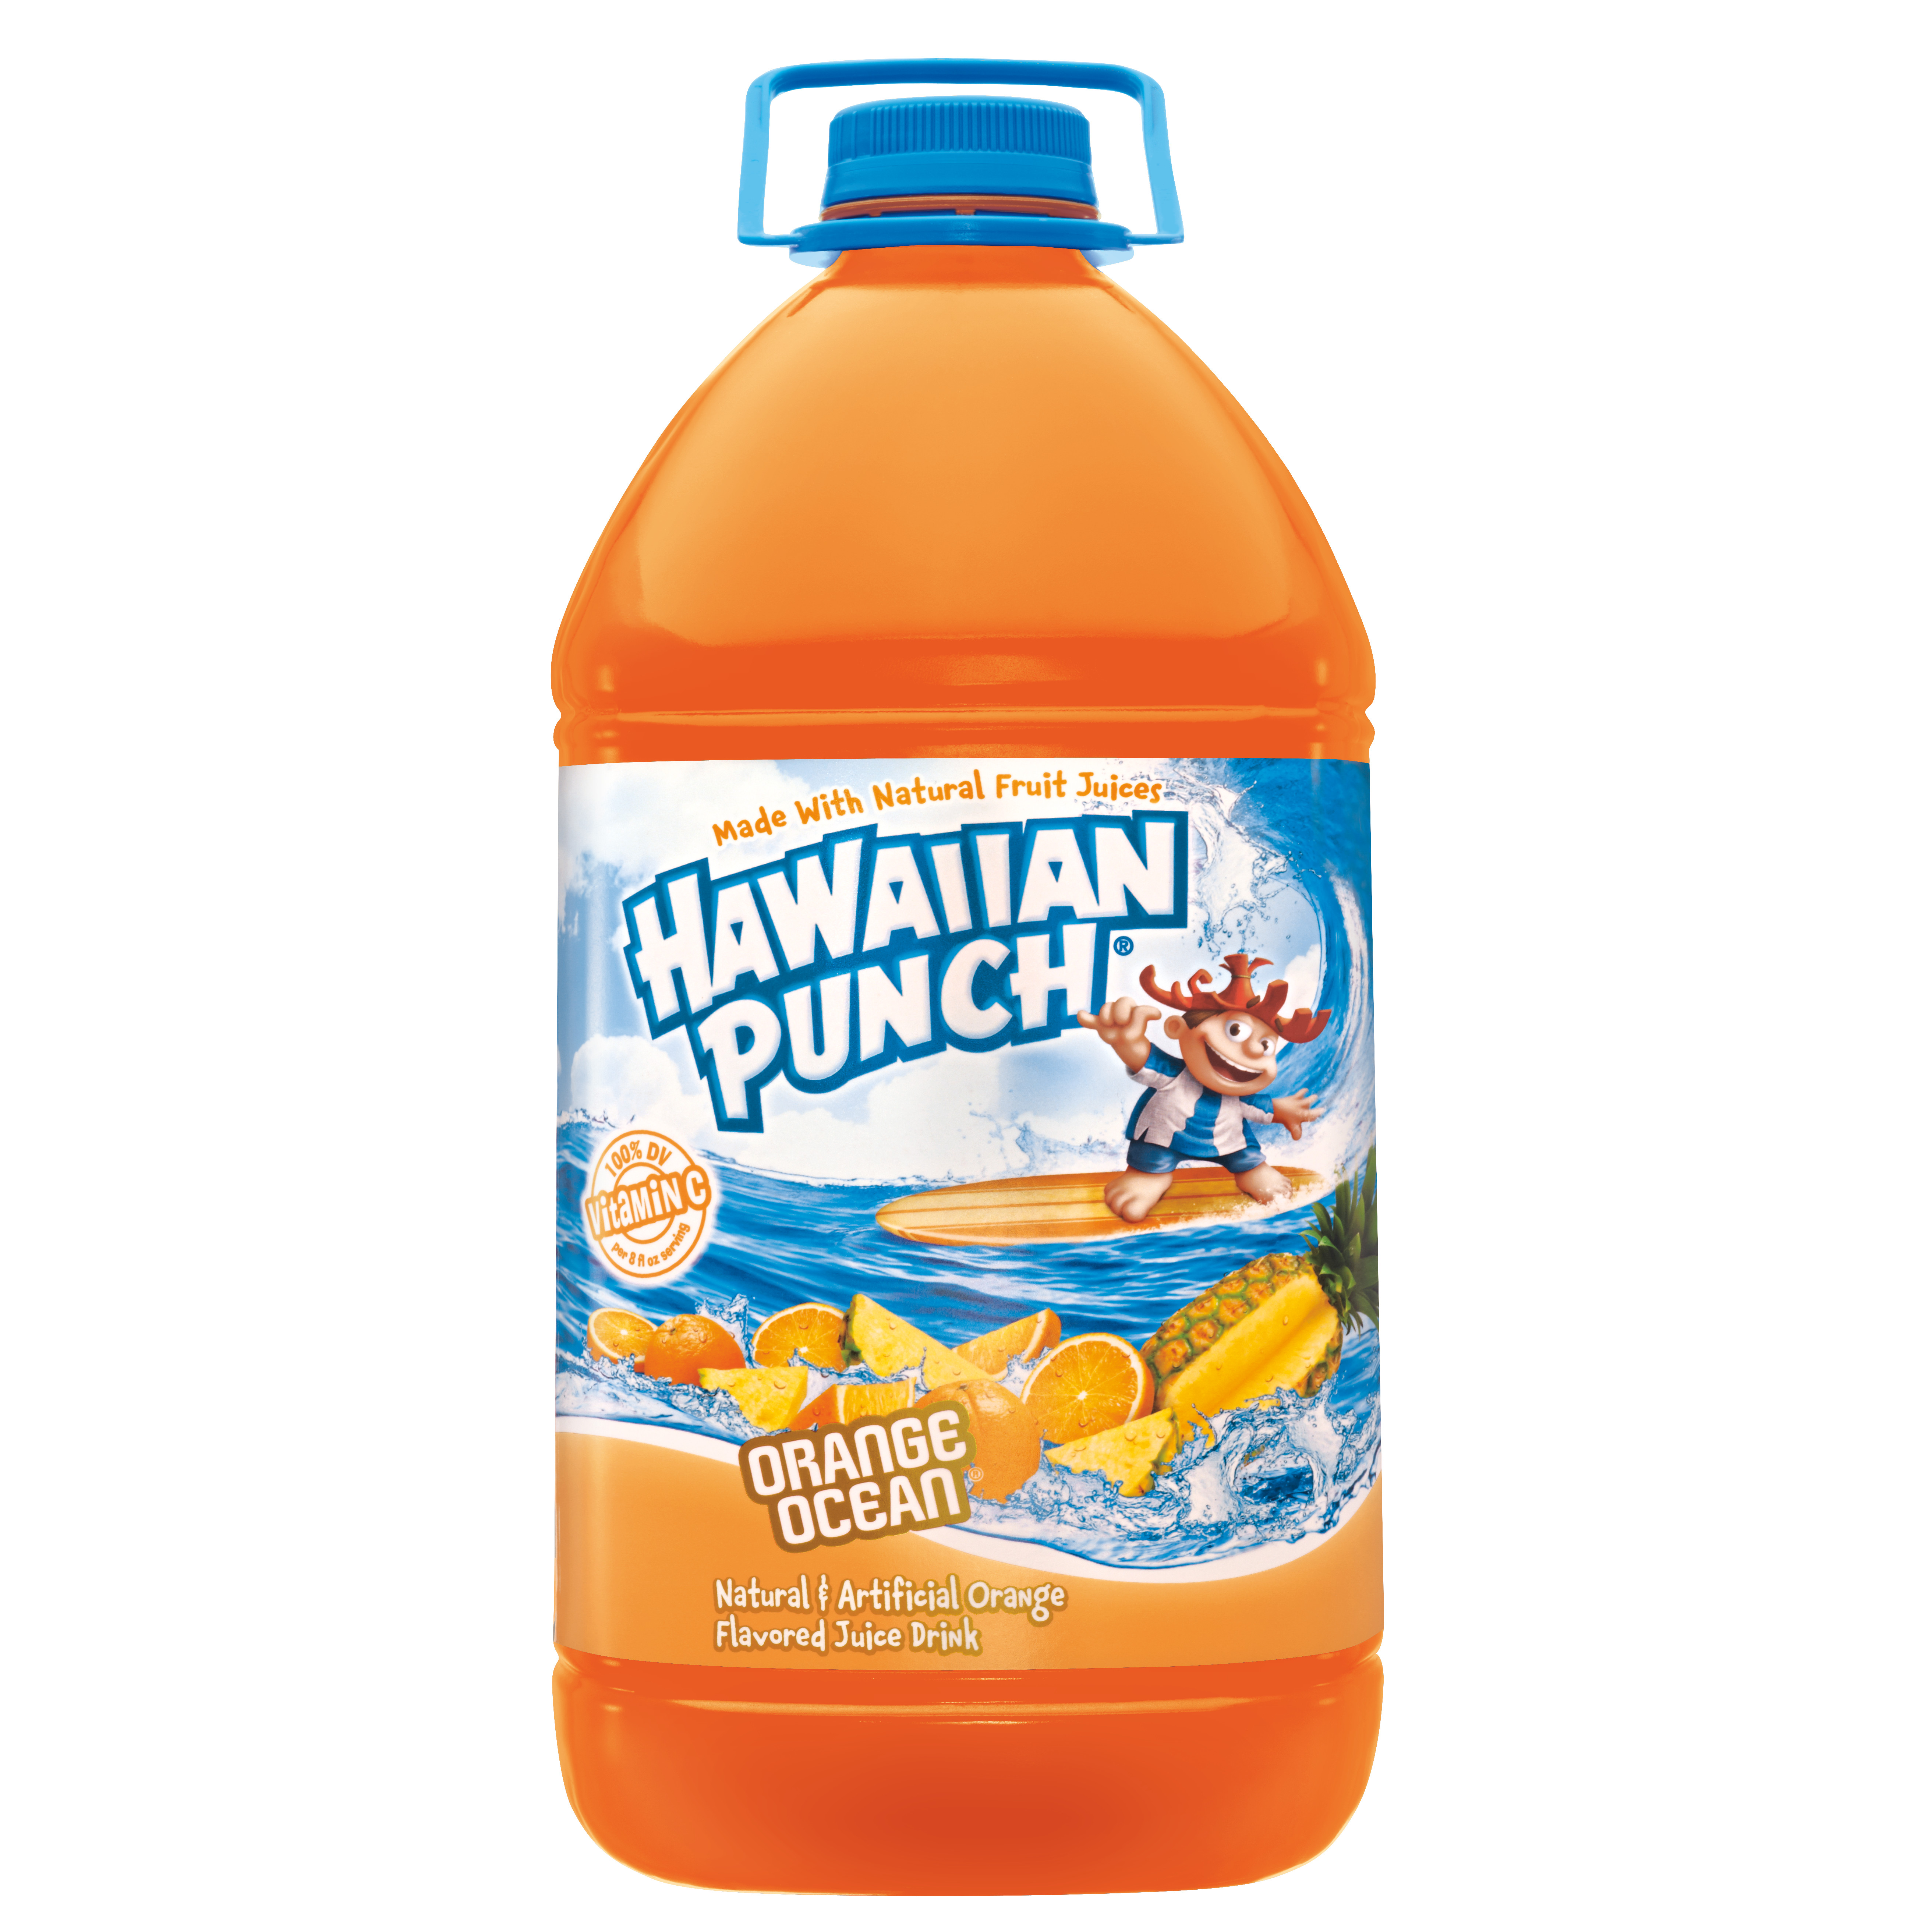 Hawaiian Punch Orange Ocean, 1 gal